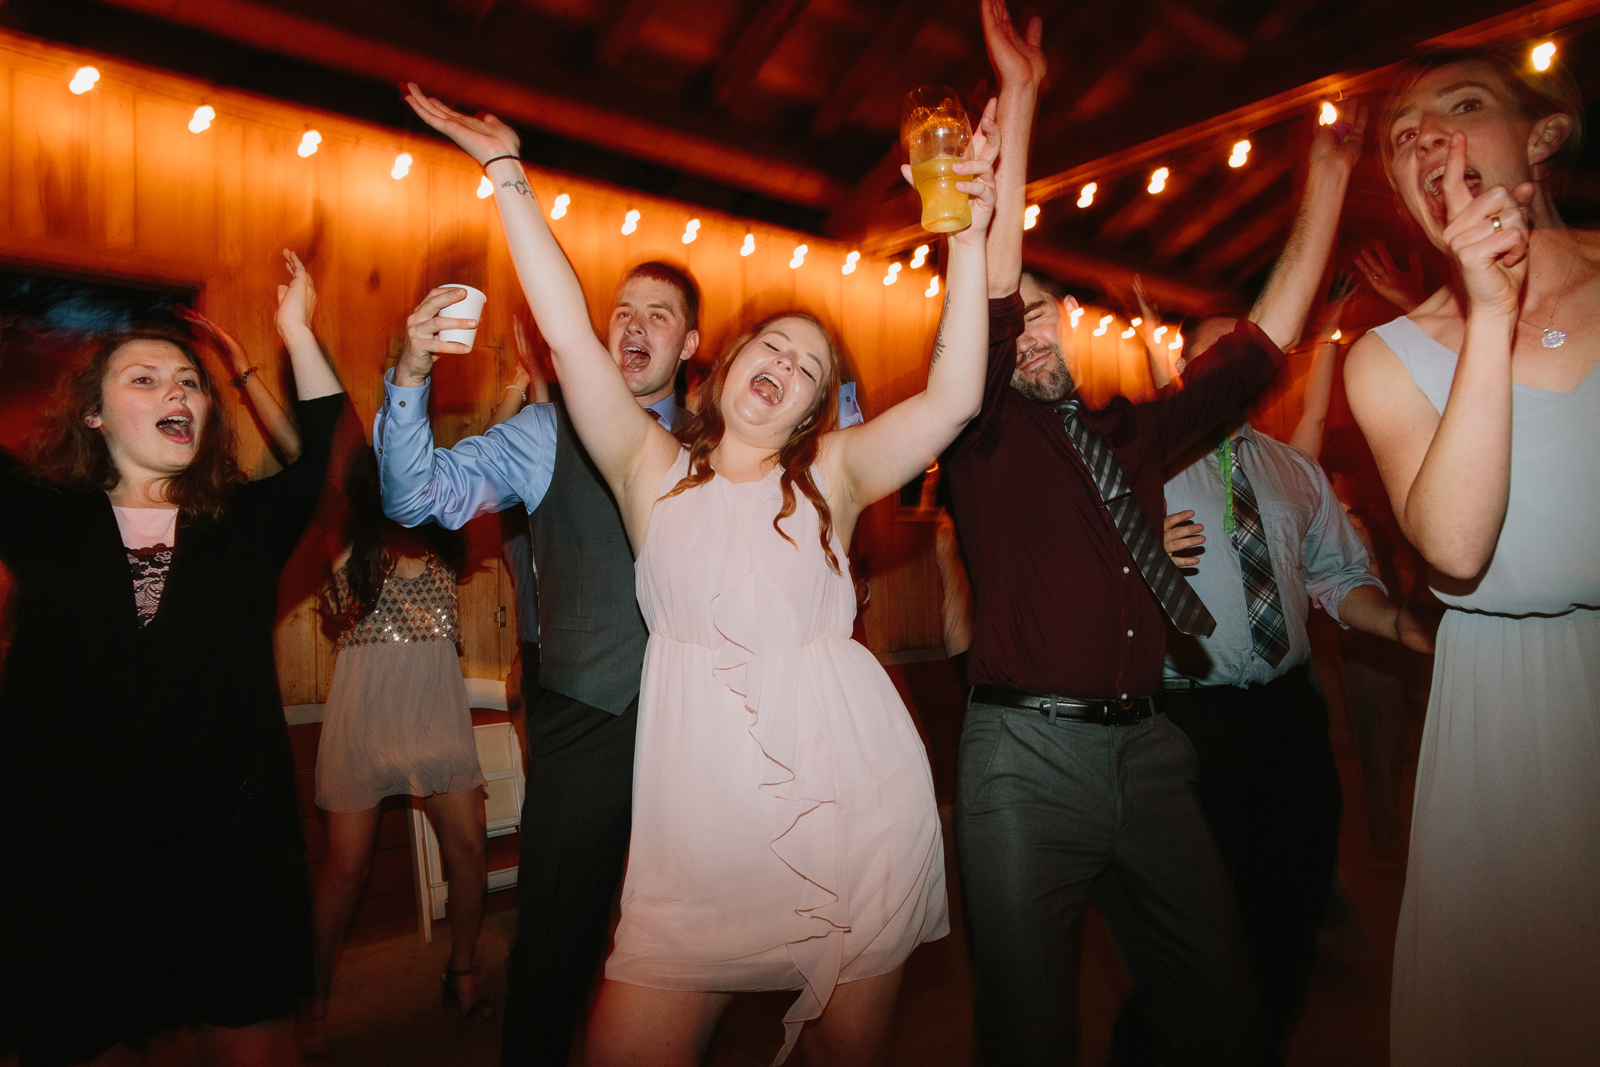 Guests dance during a wedding reception at Bridal Veil Lakes in Oregon